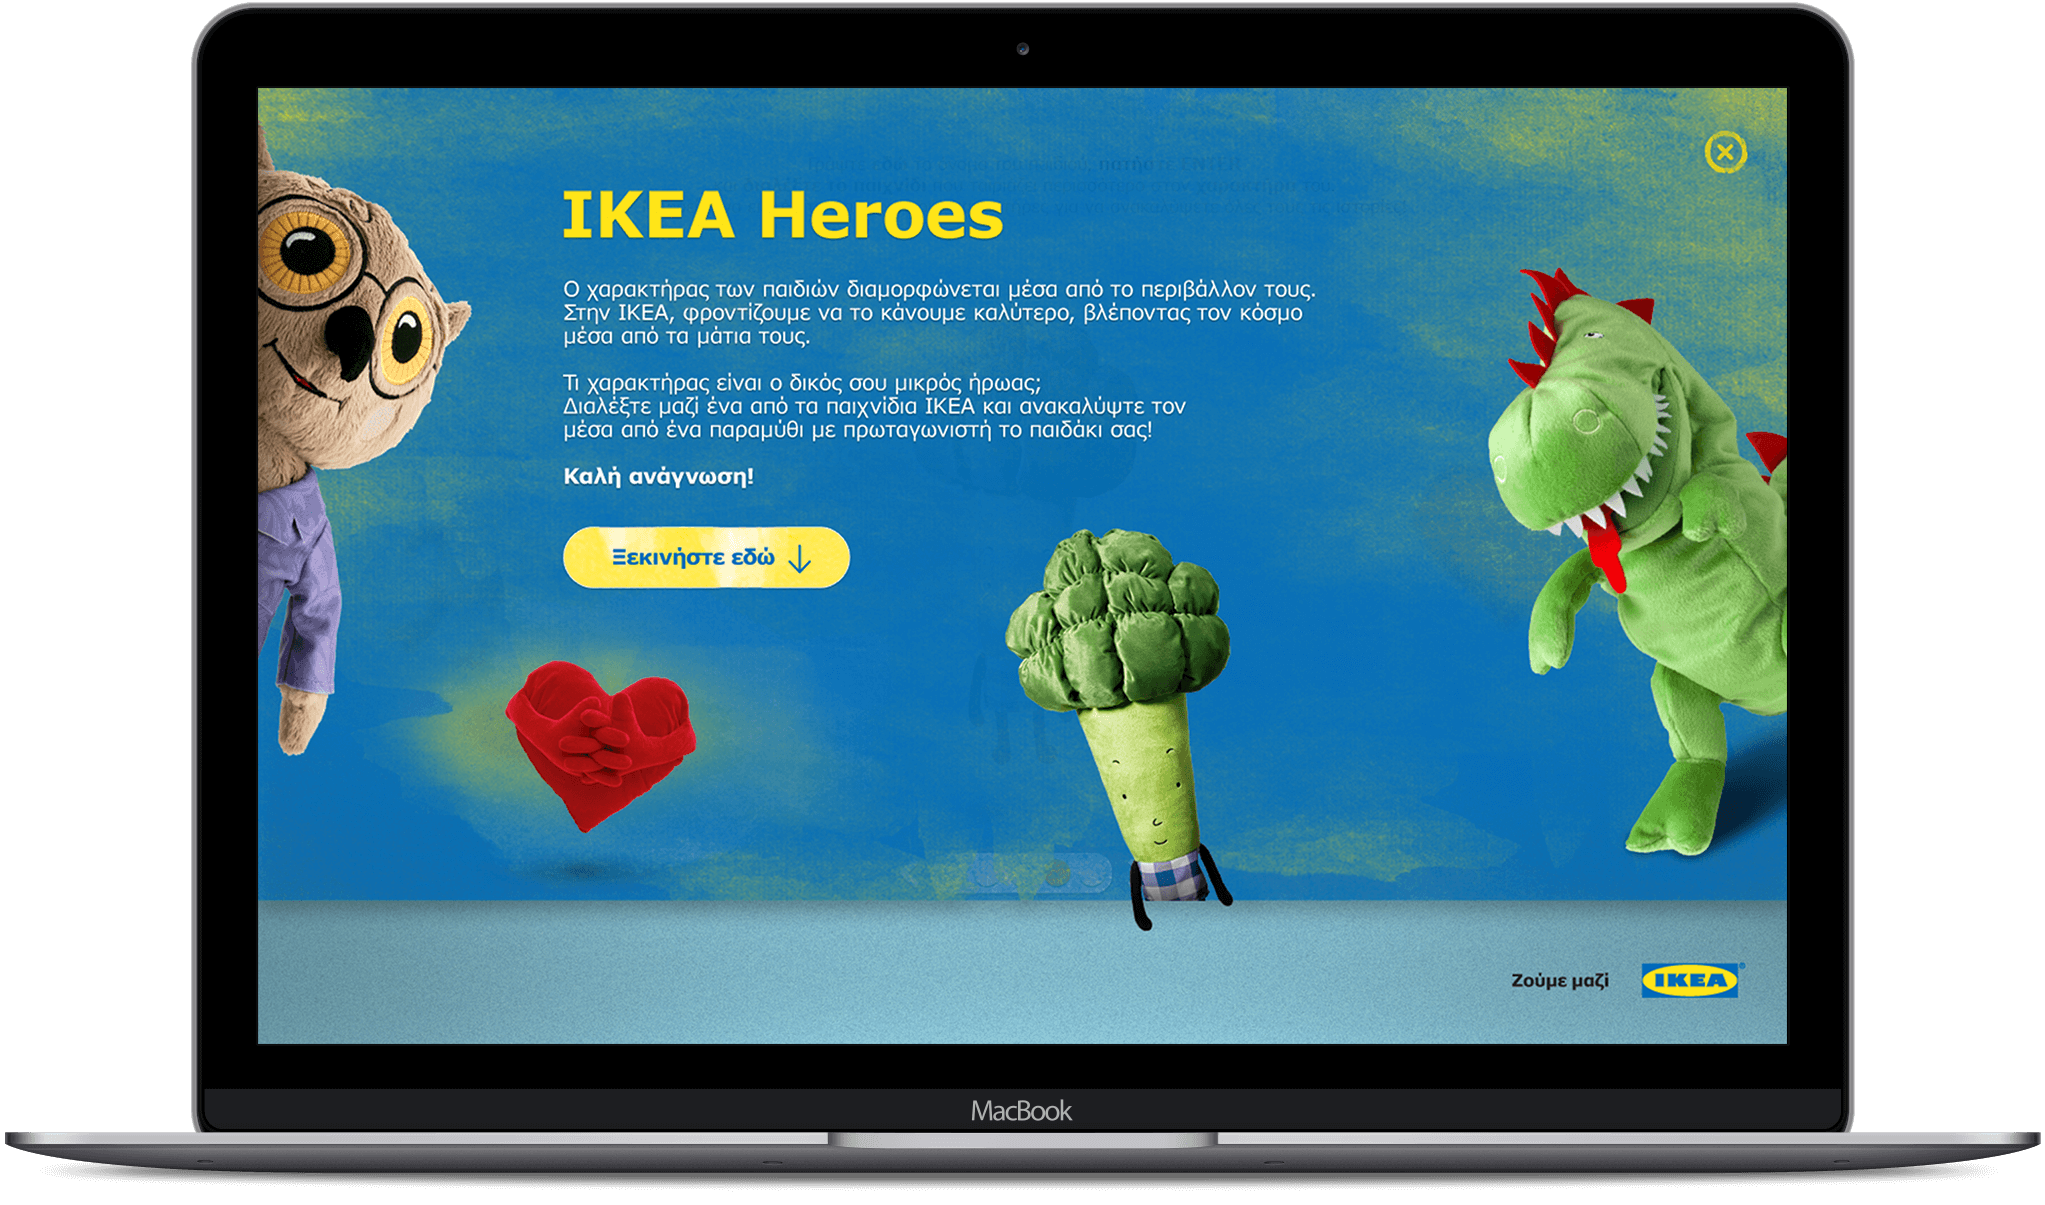 Ikea-Heroes-Macbook